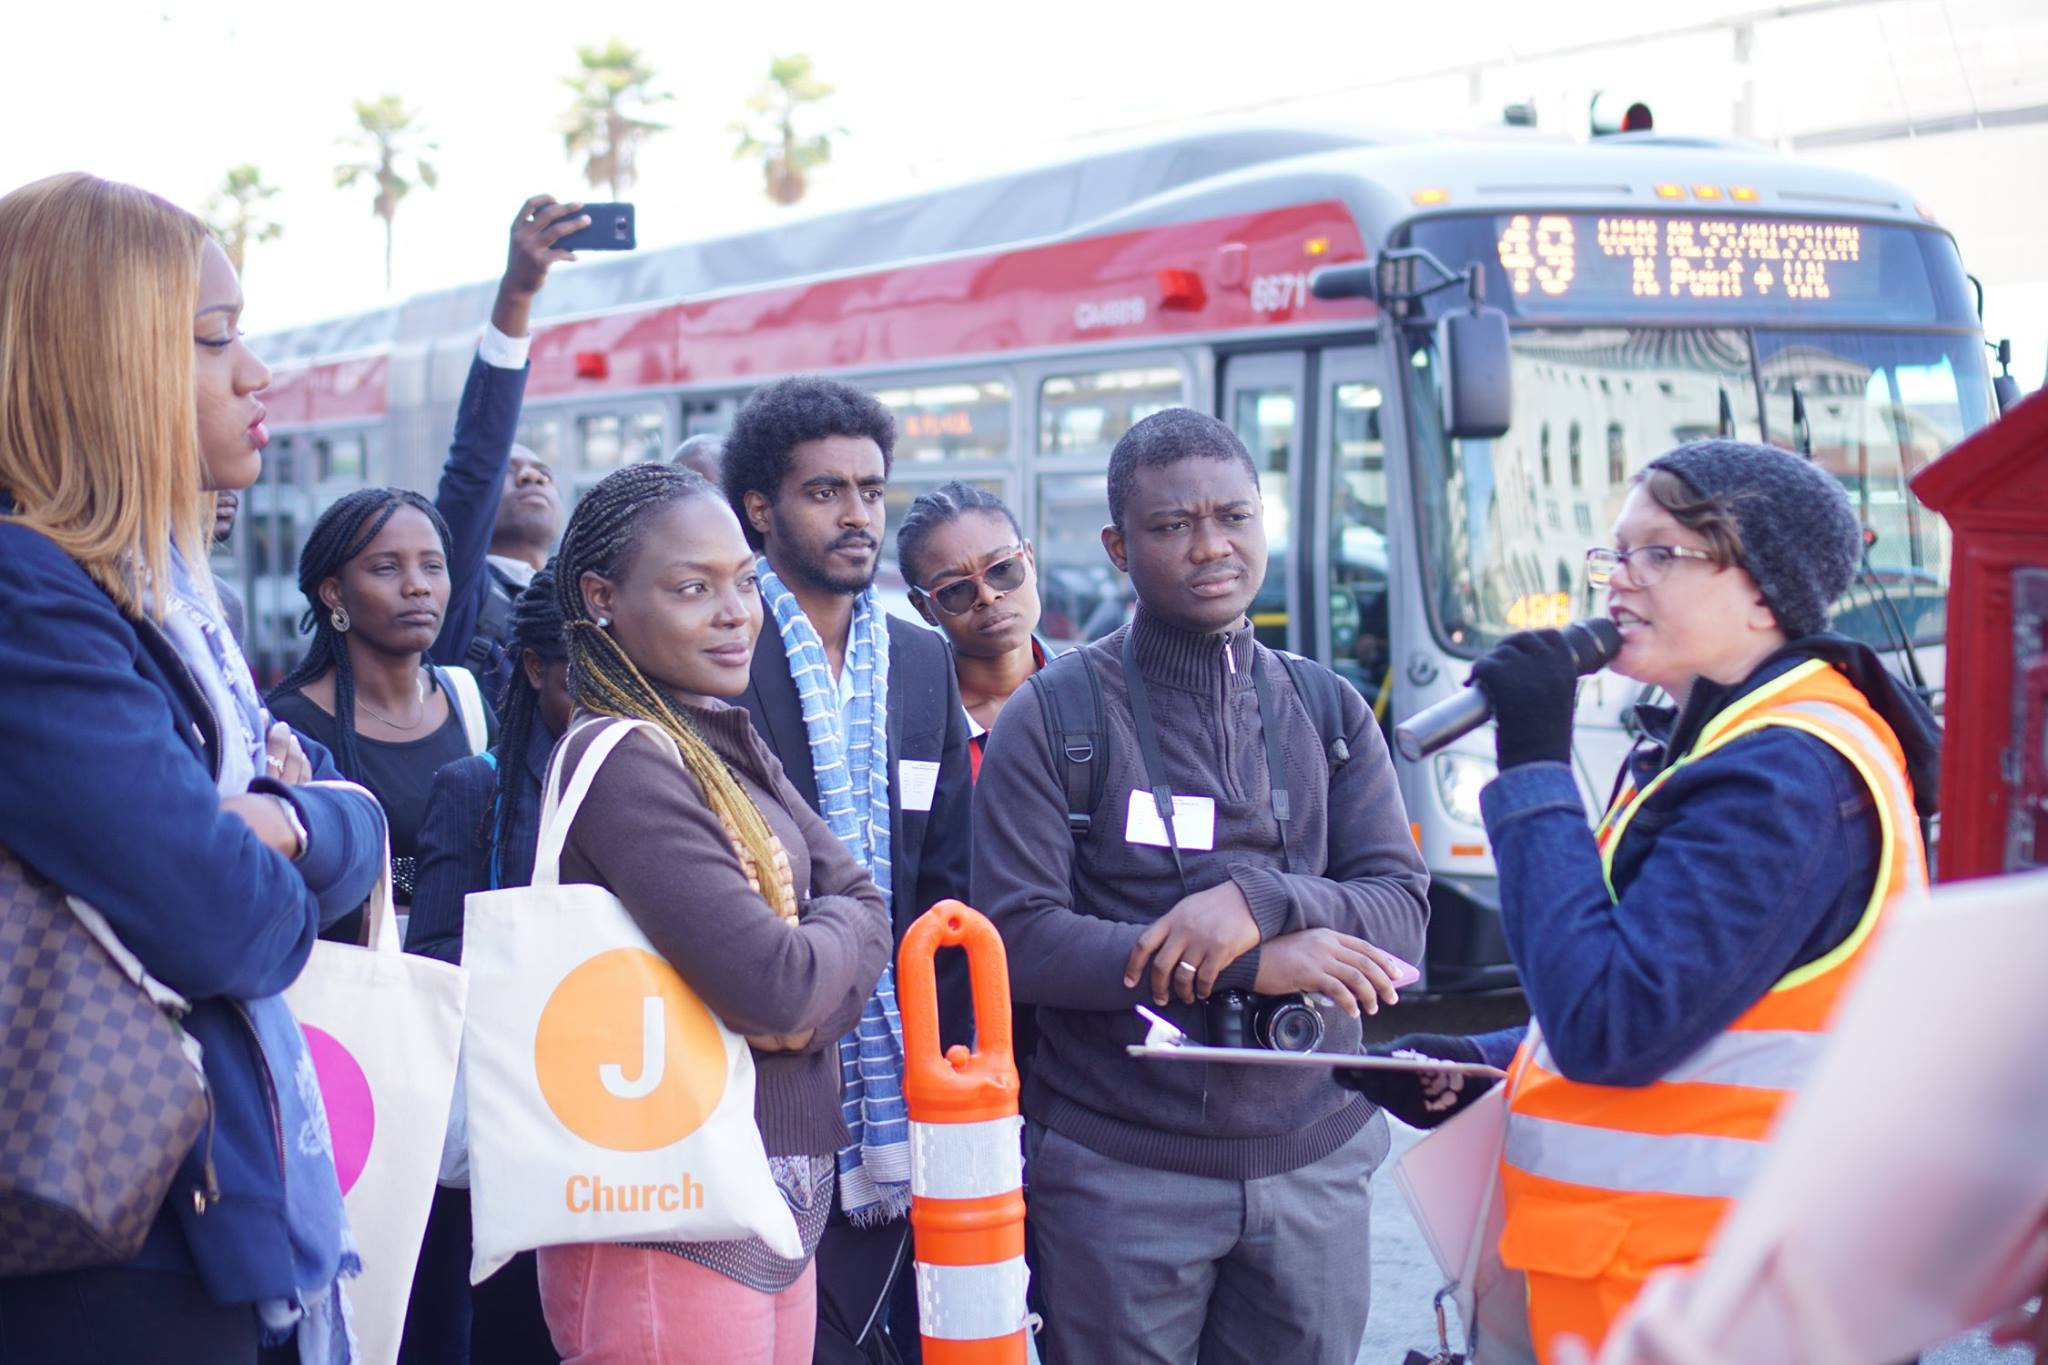 Mandela Fellows in San Francisco